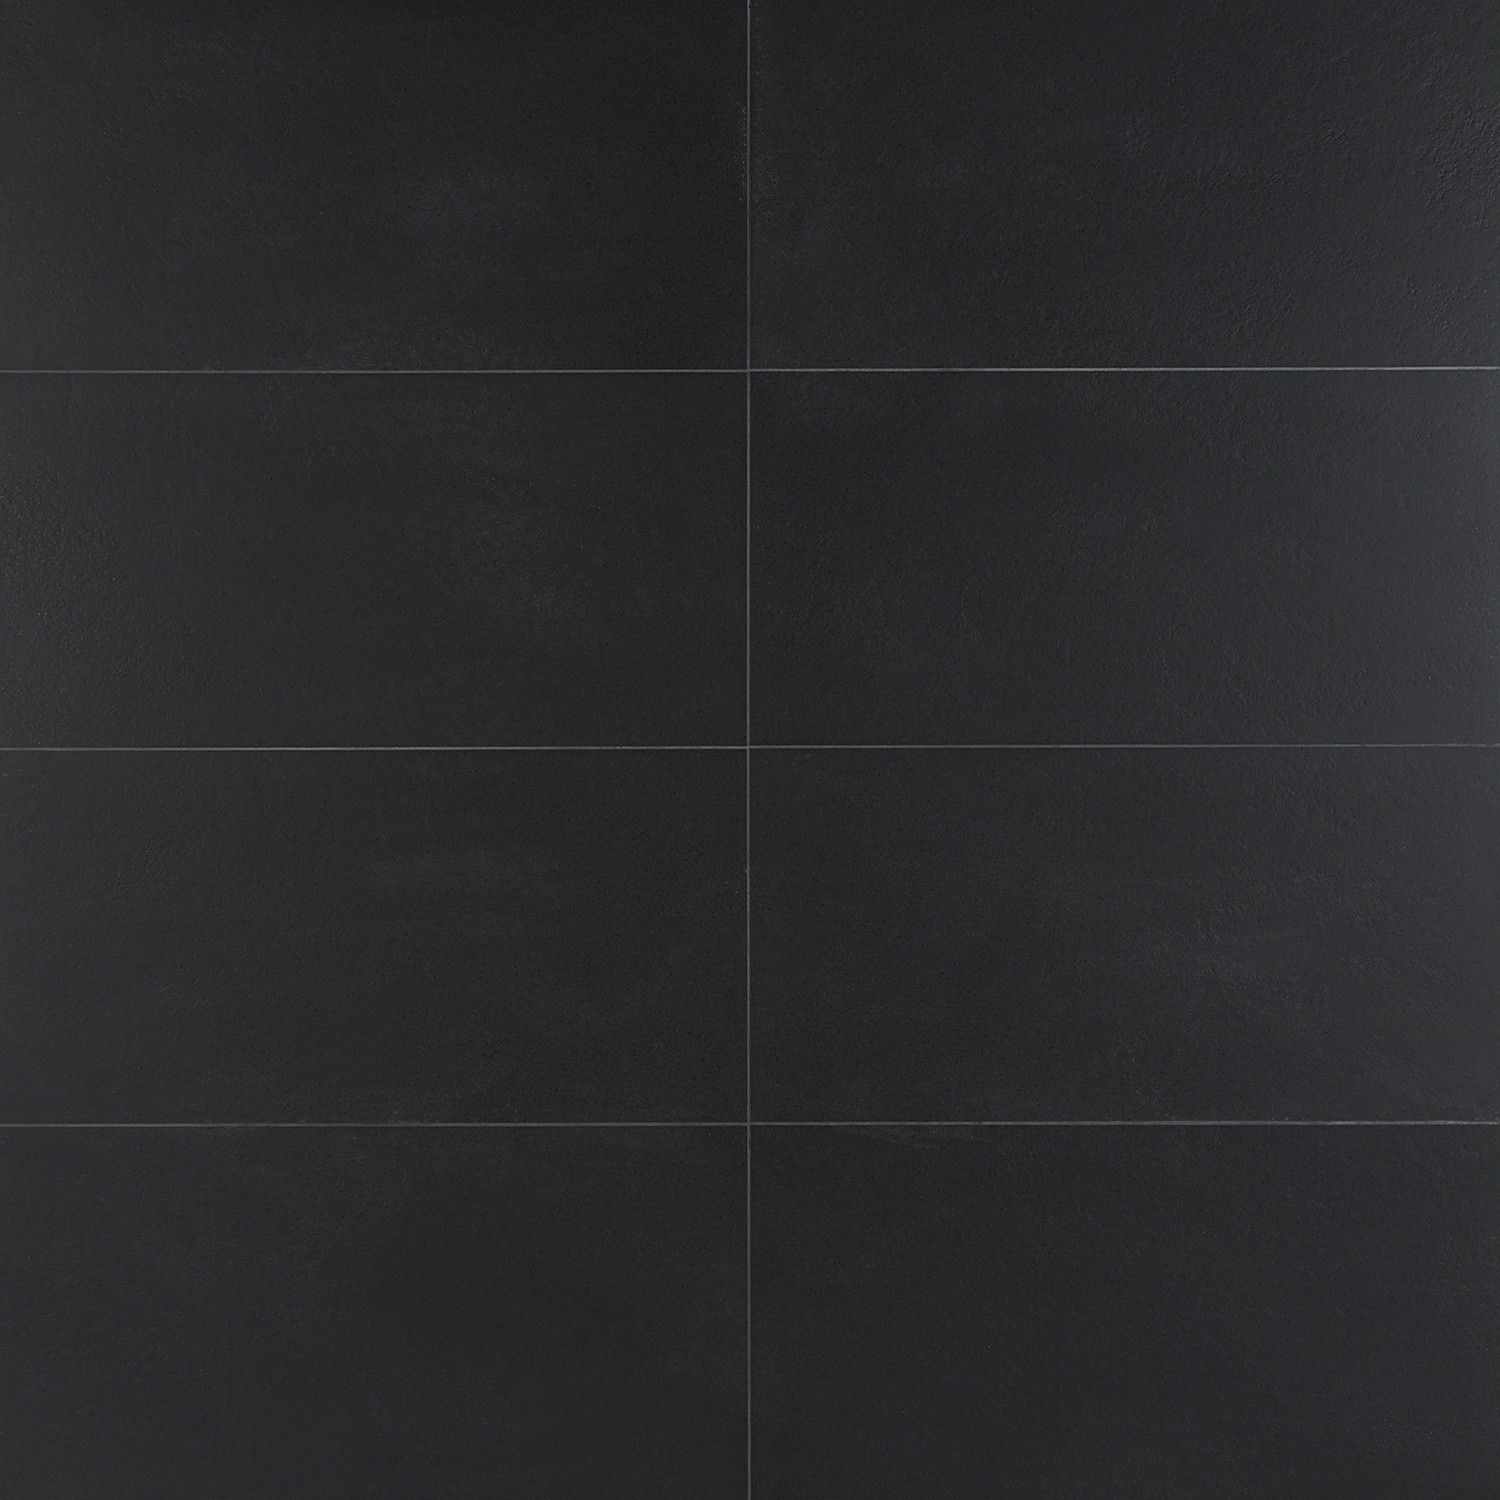 Ec1 Industry Concrete Barbican Nero Matte Porcelain Tile In 2020 Black Tile Bathrooms Porcelain Tile Black Floor Tiles